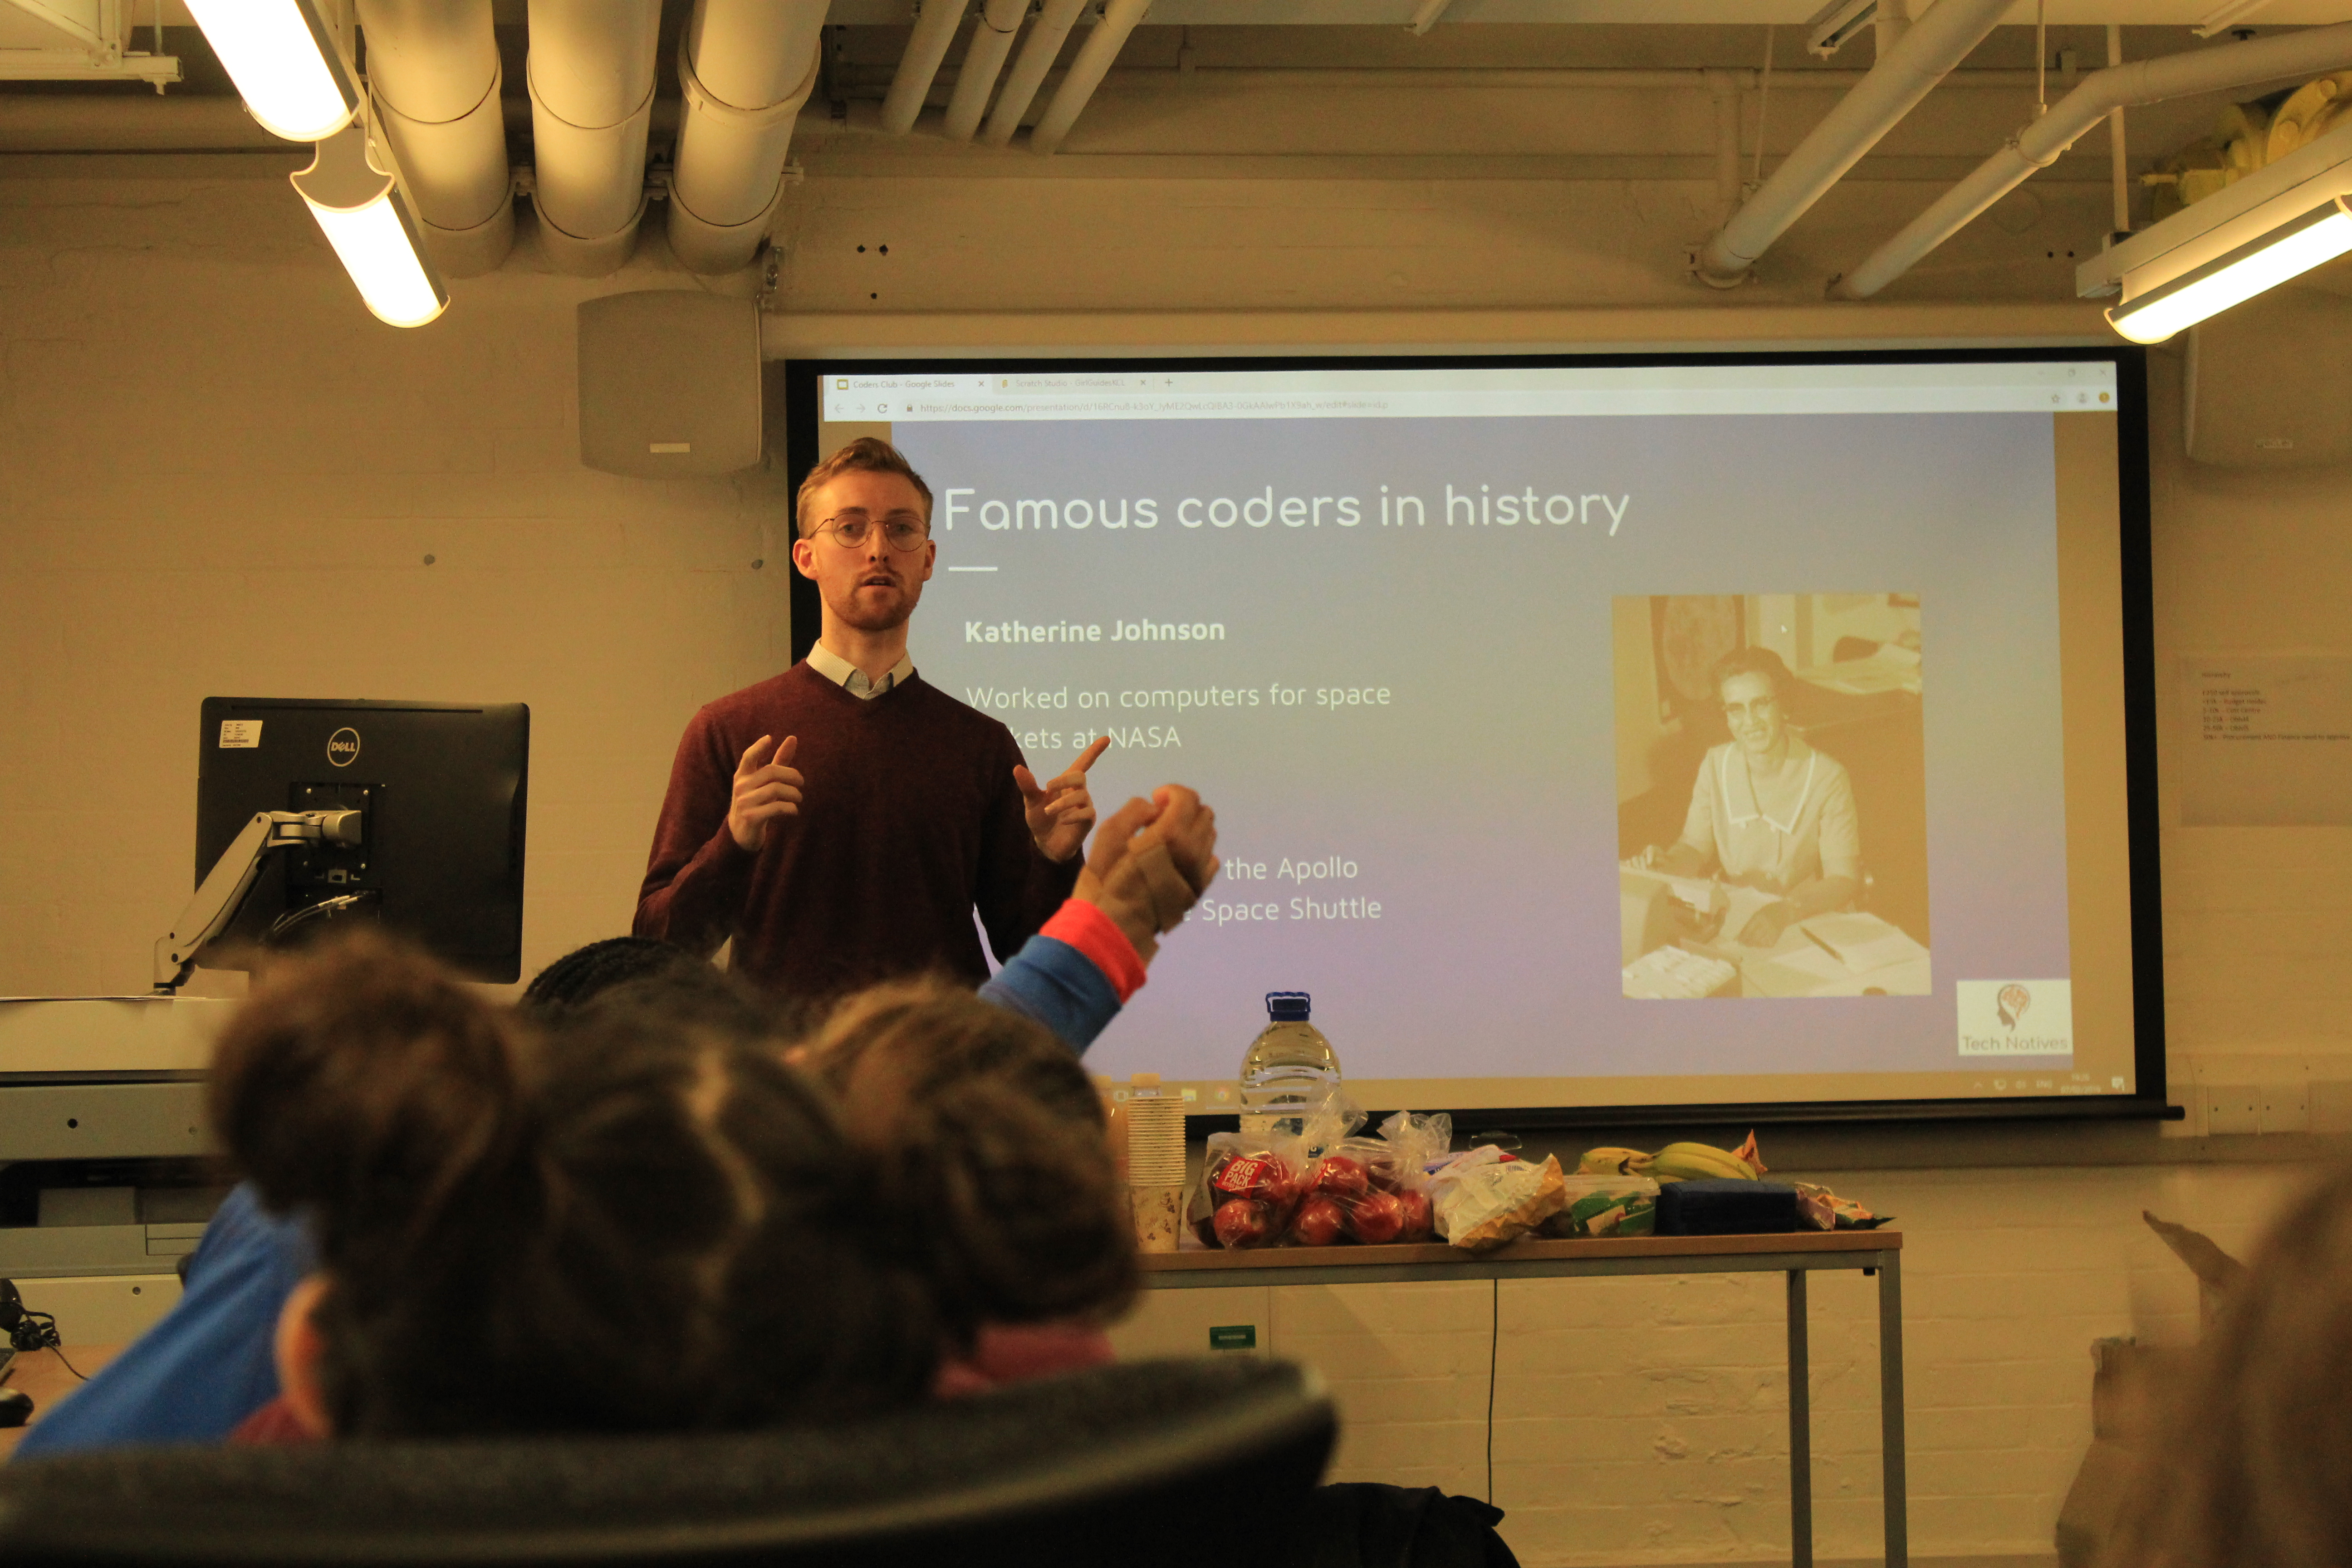 Jonny Jackson presenting about famous coders in history